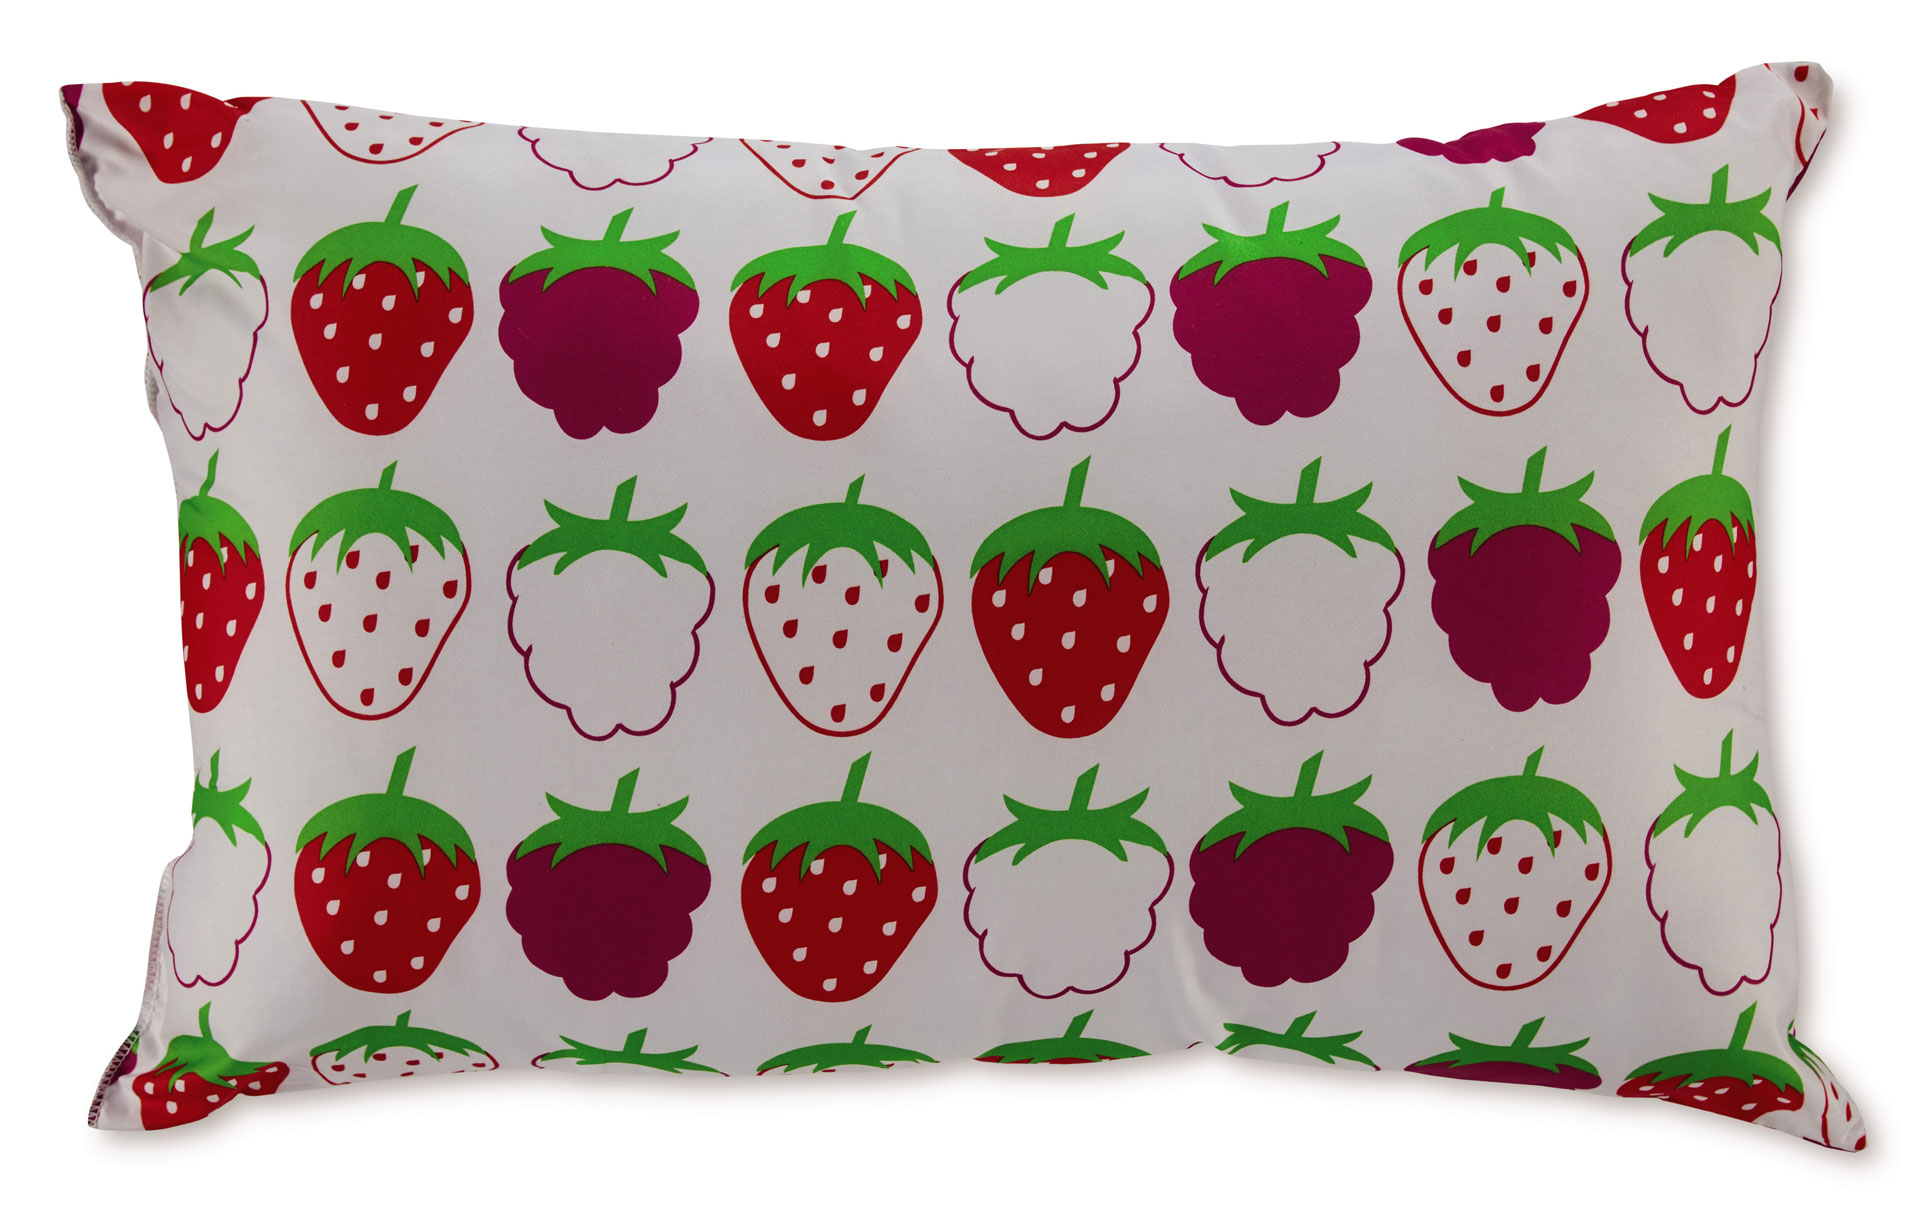 Aldi children scented pillows